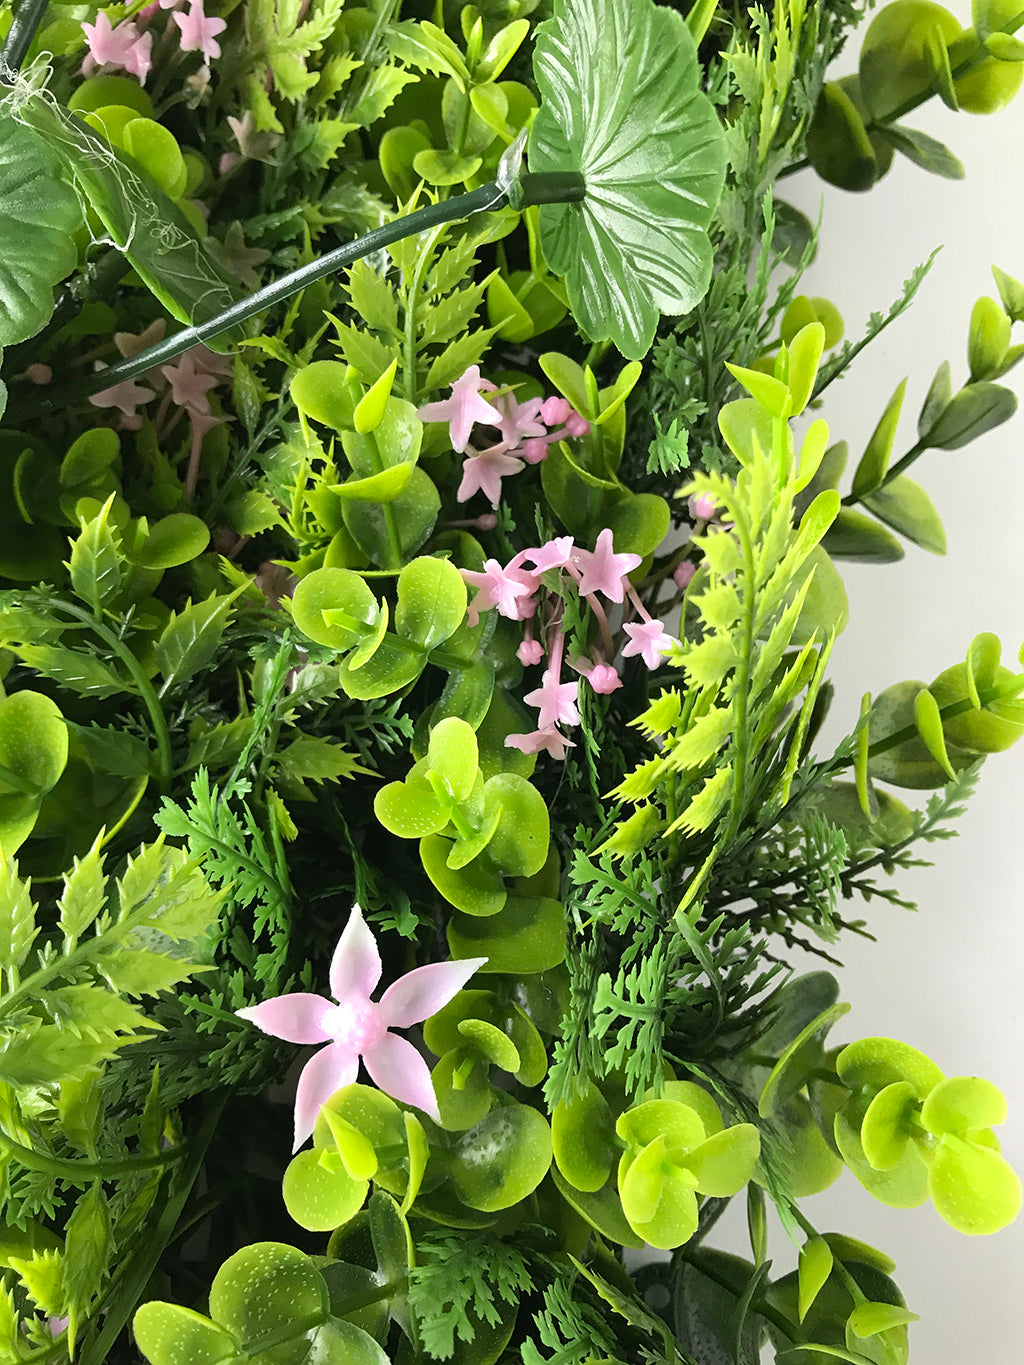 Artificial green wall mixed plant panel with pink flowers 100x100 cm artificial green wall mixed plant panel with pink flowers 100x100 cm mightylinksfo